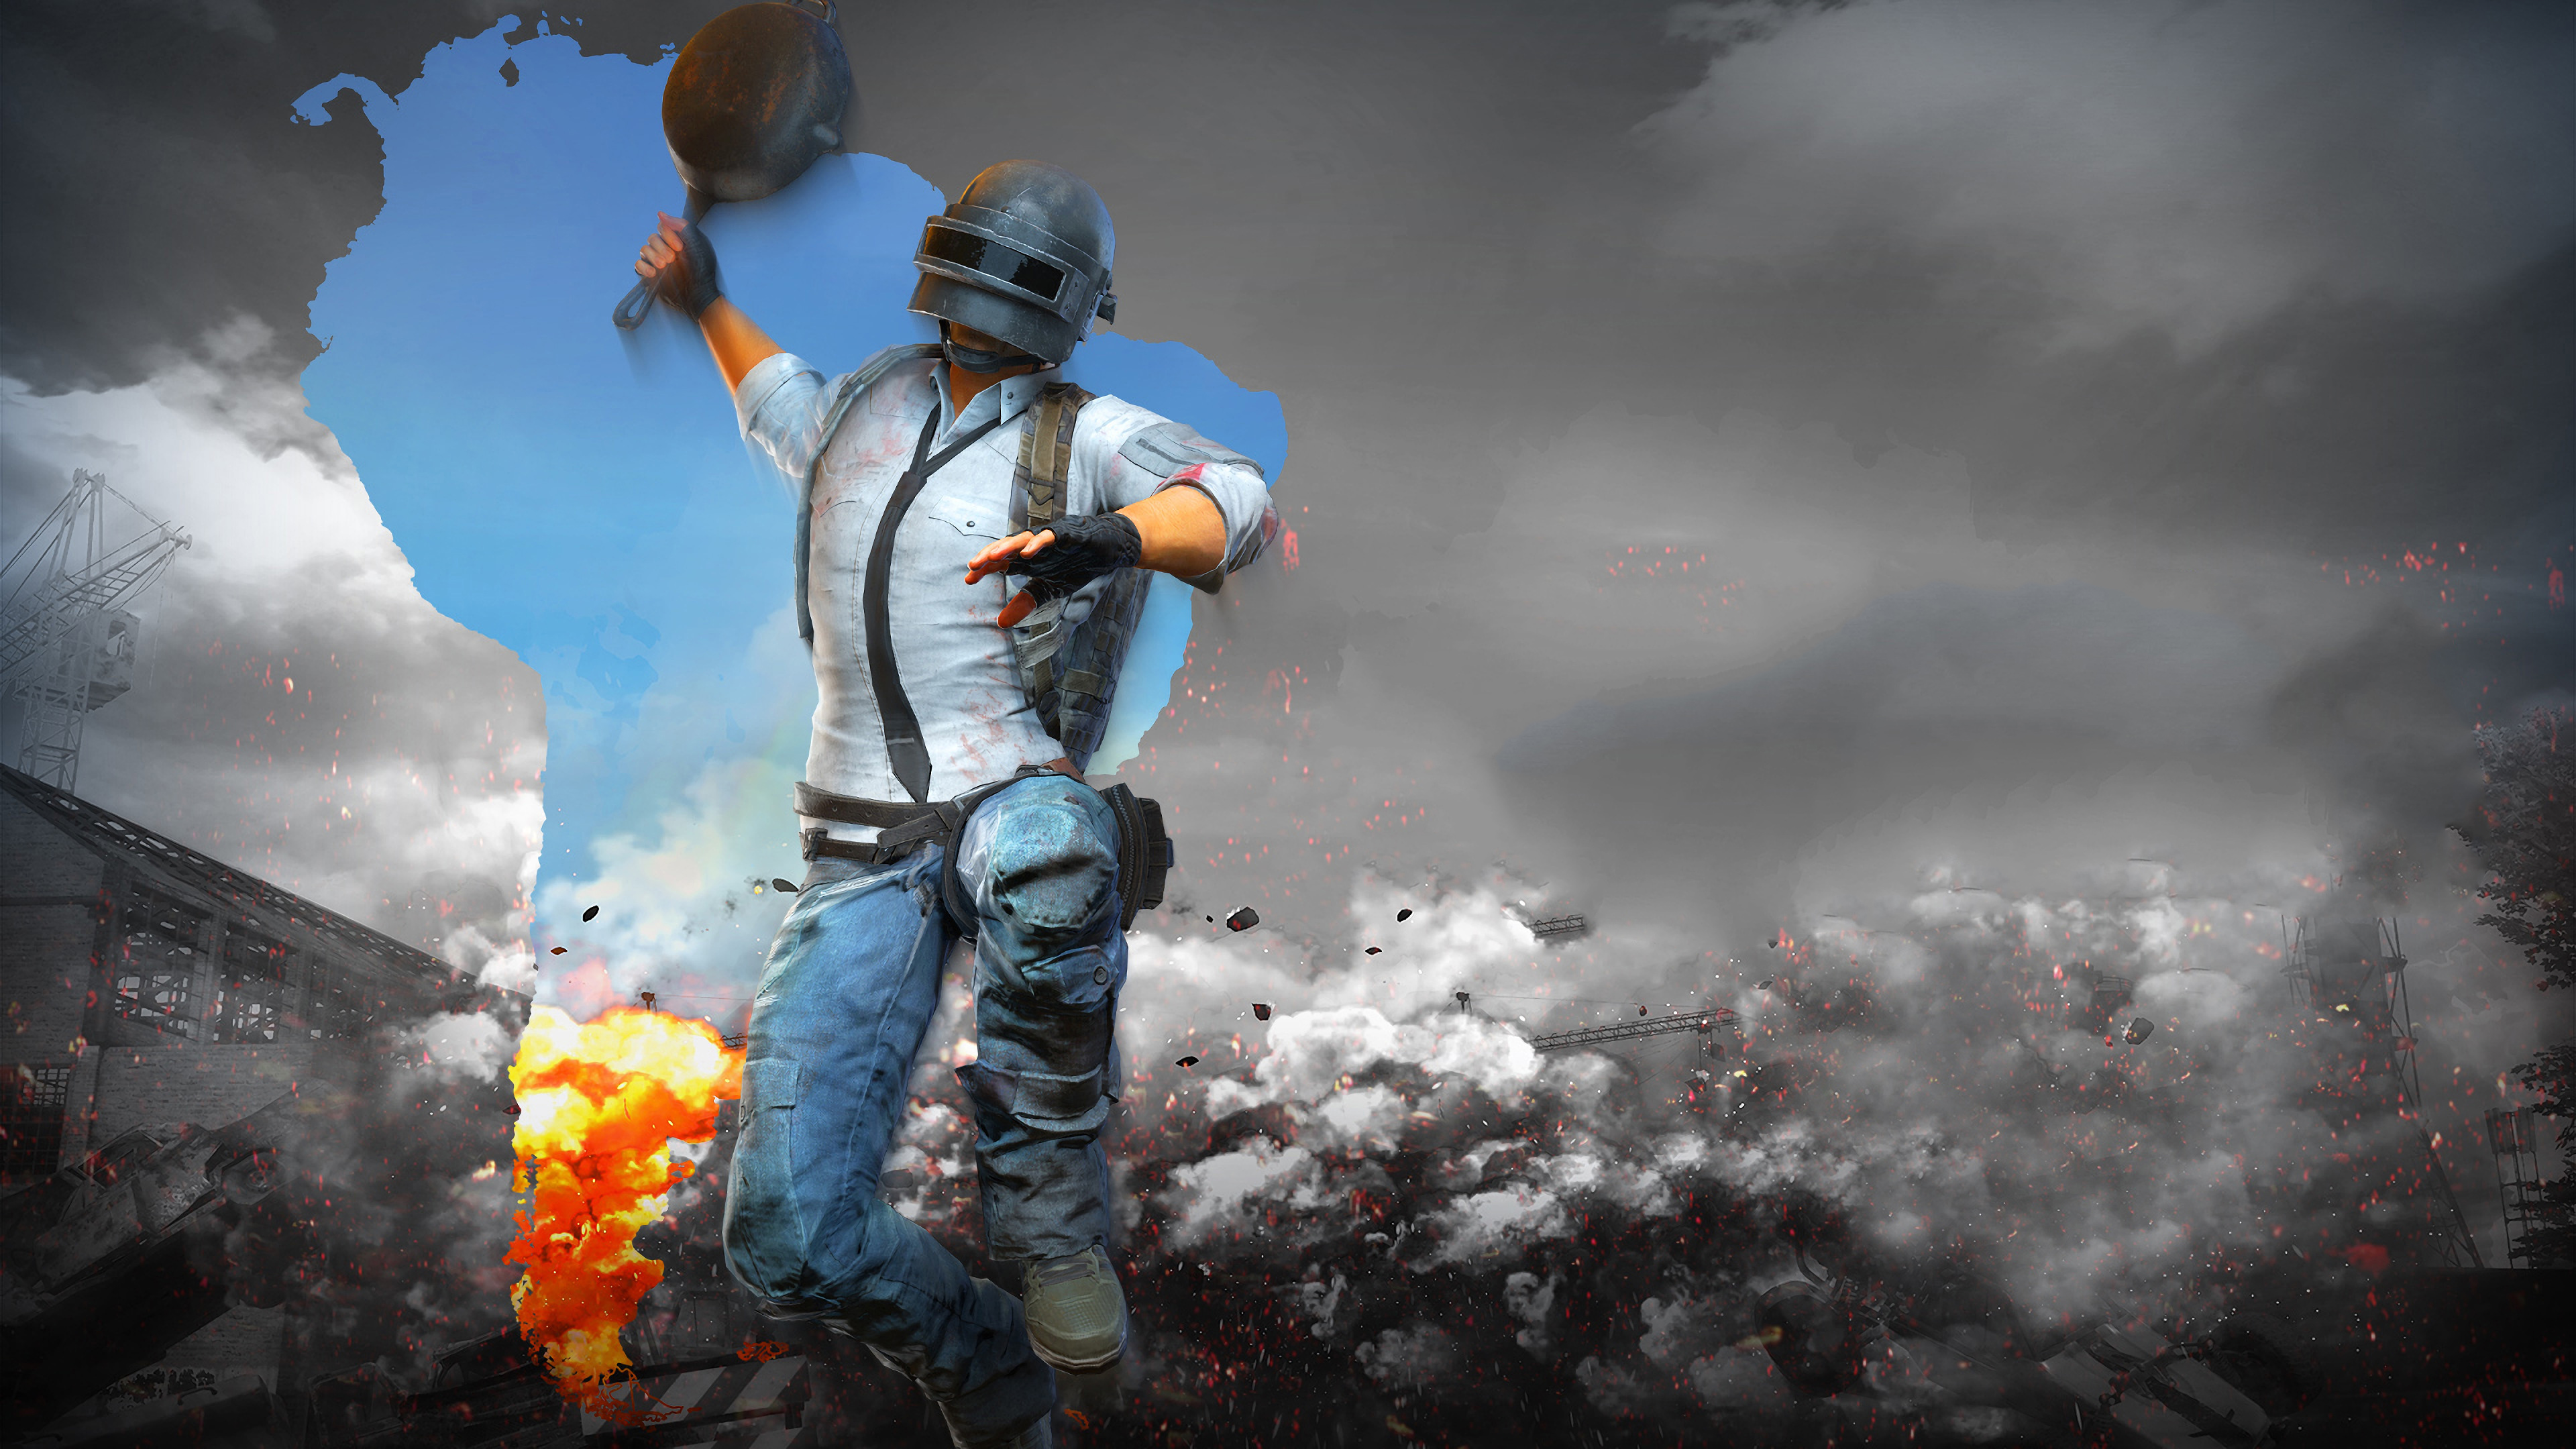 Pubg Game 4k Wallpaper Download: PUBG Helmet Man With Pan 4k, HD Games, 4k Wallpapers